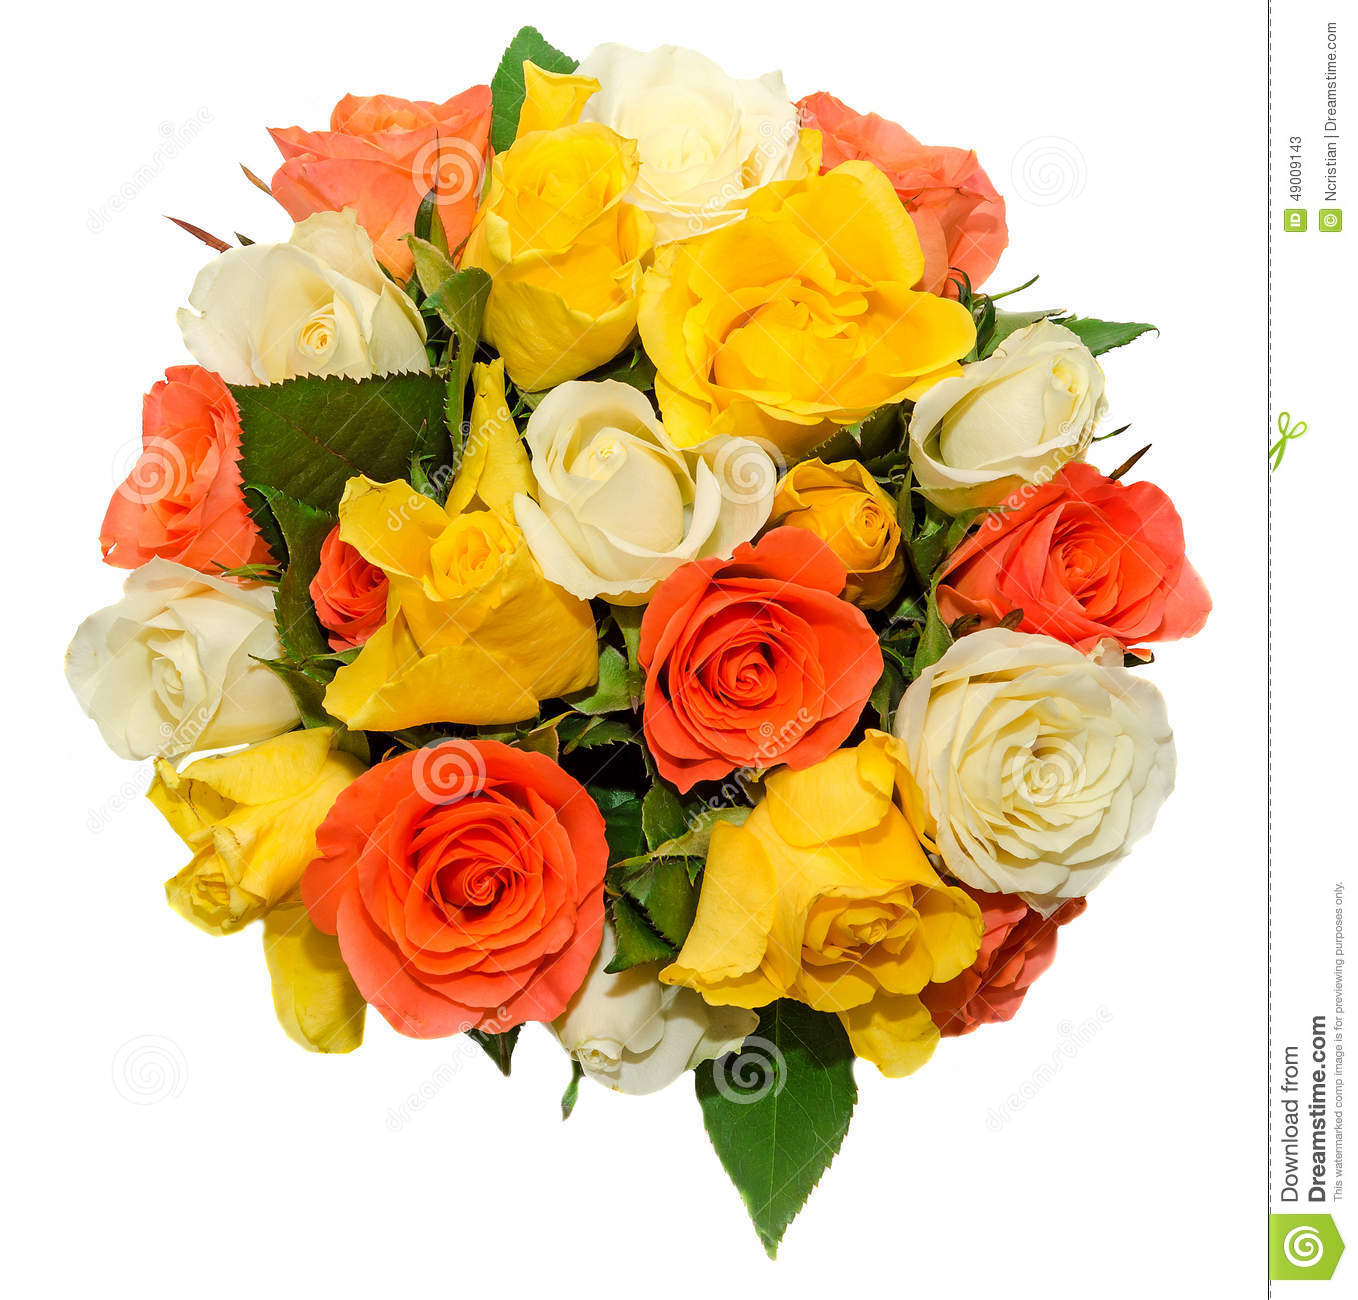 Valentines day flowers with white orange red and yellow roses download comp mightylinksfo